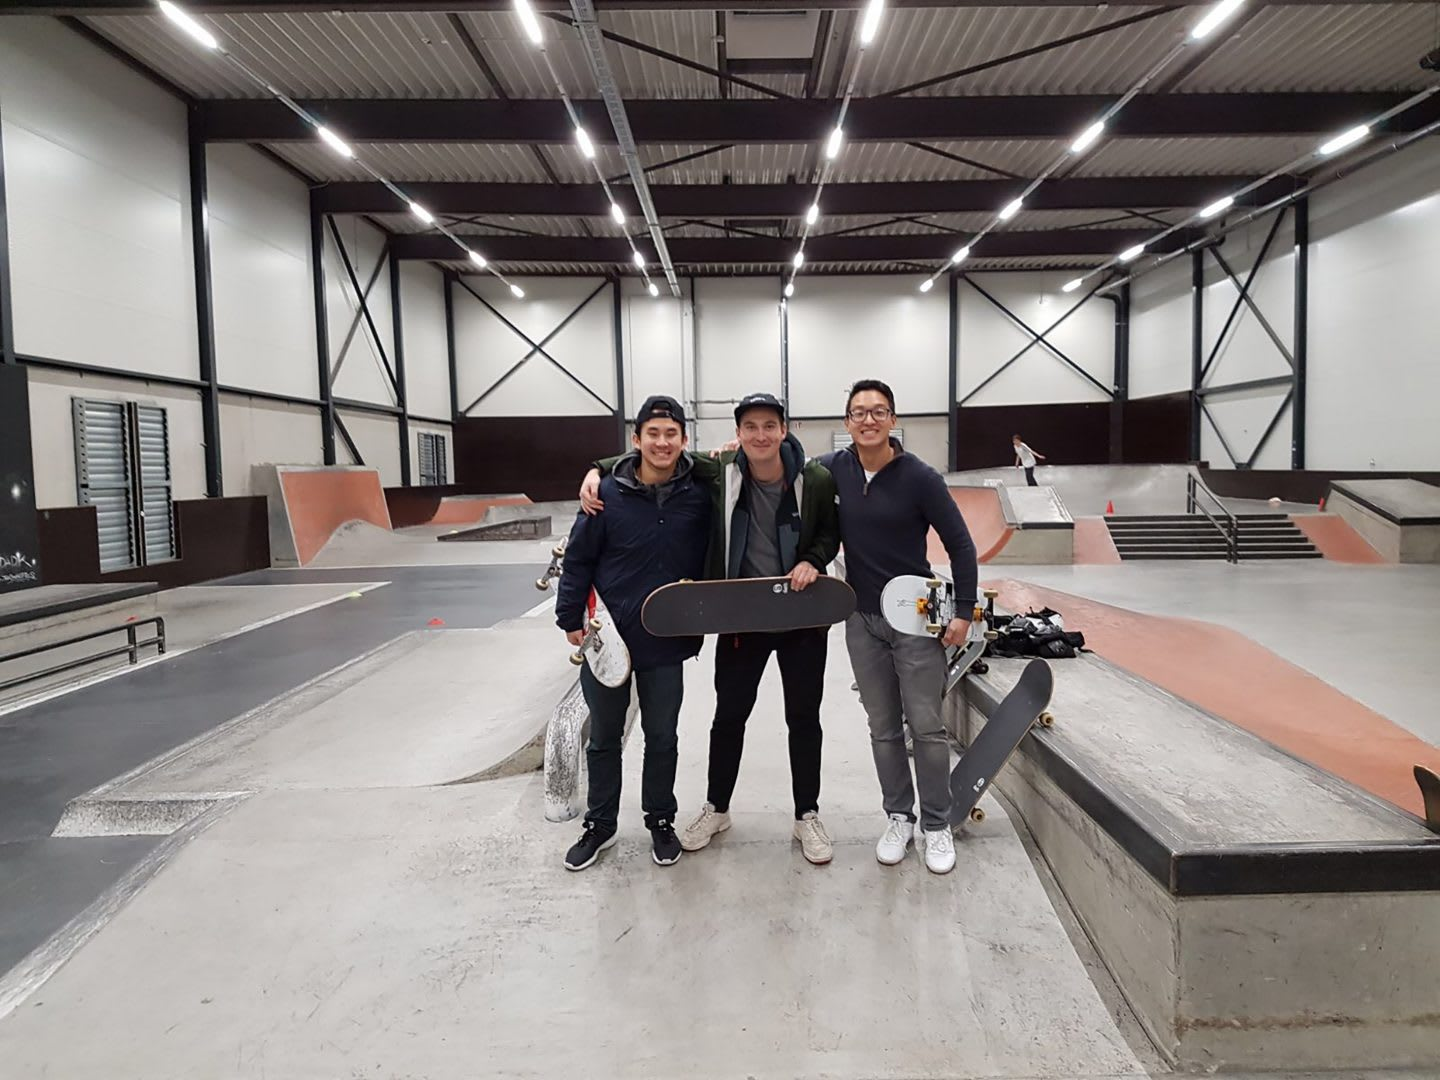 Three young men standing together linking arms after a successful indoor skating session. Skaters, Skateboarding, Friendship.